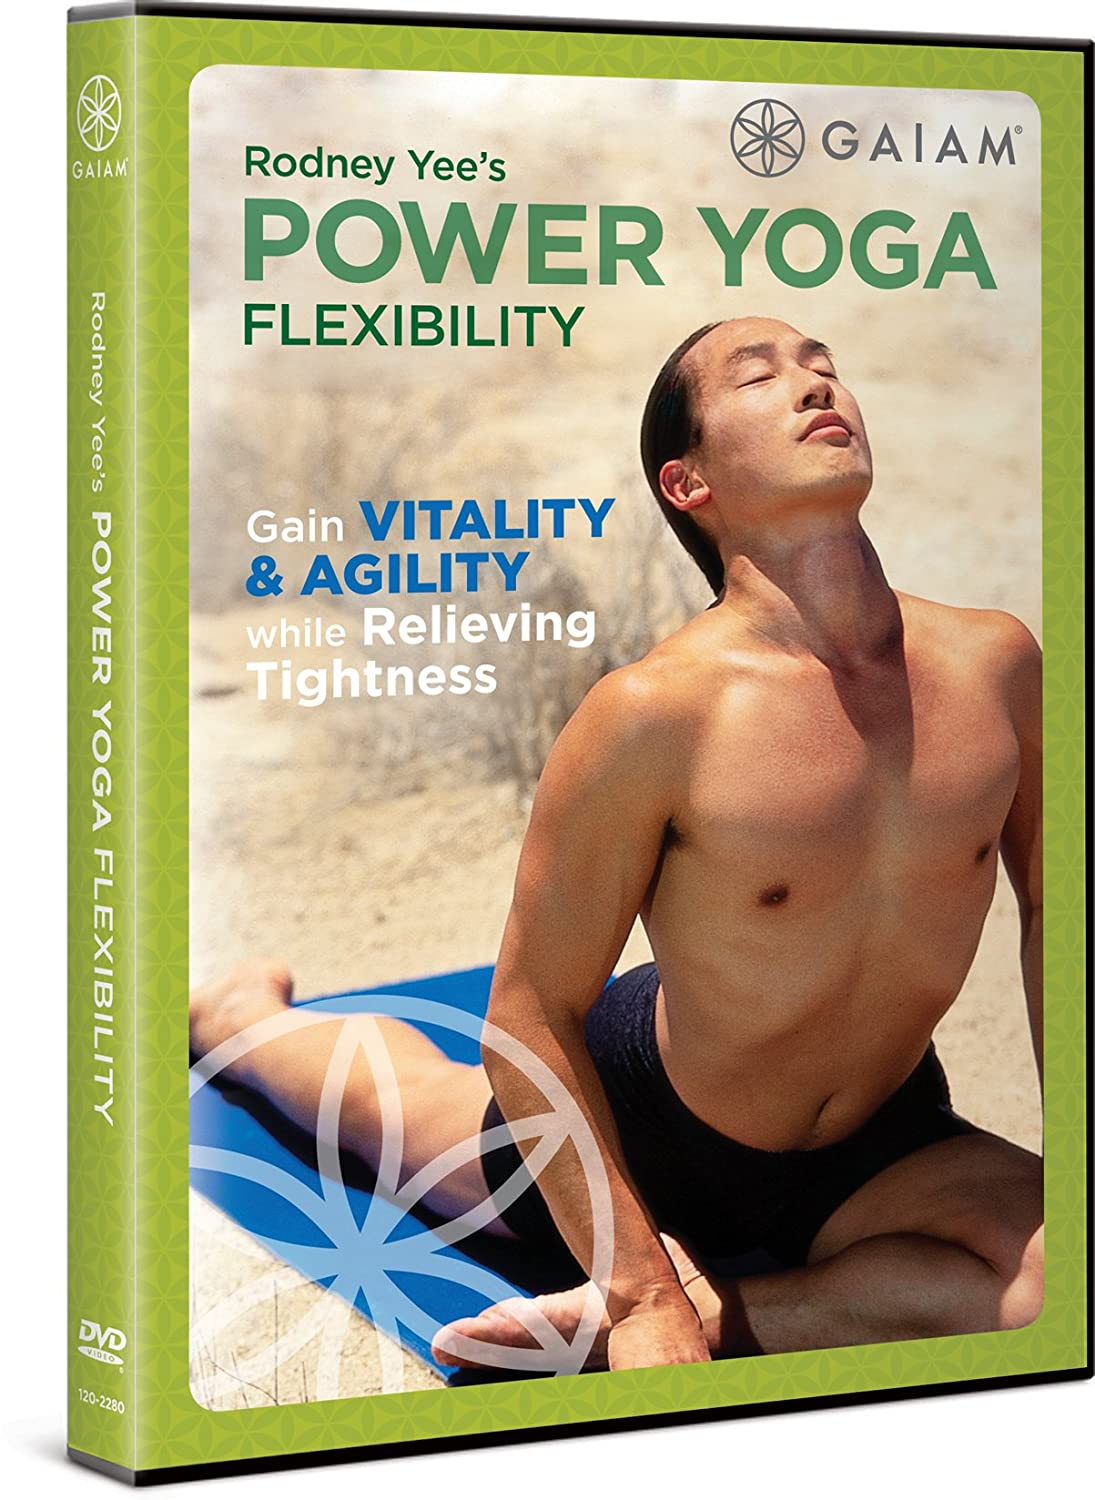 Power Yoga - Flexibility [DVD] [2004] [Reino Unido]: Amazon ...